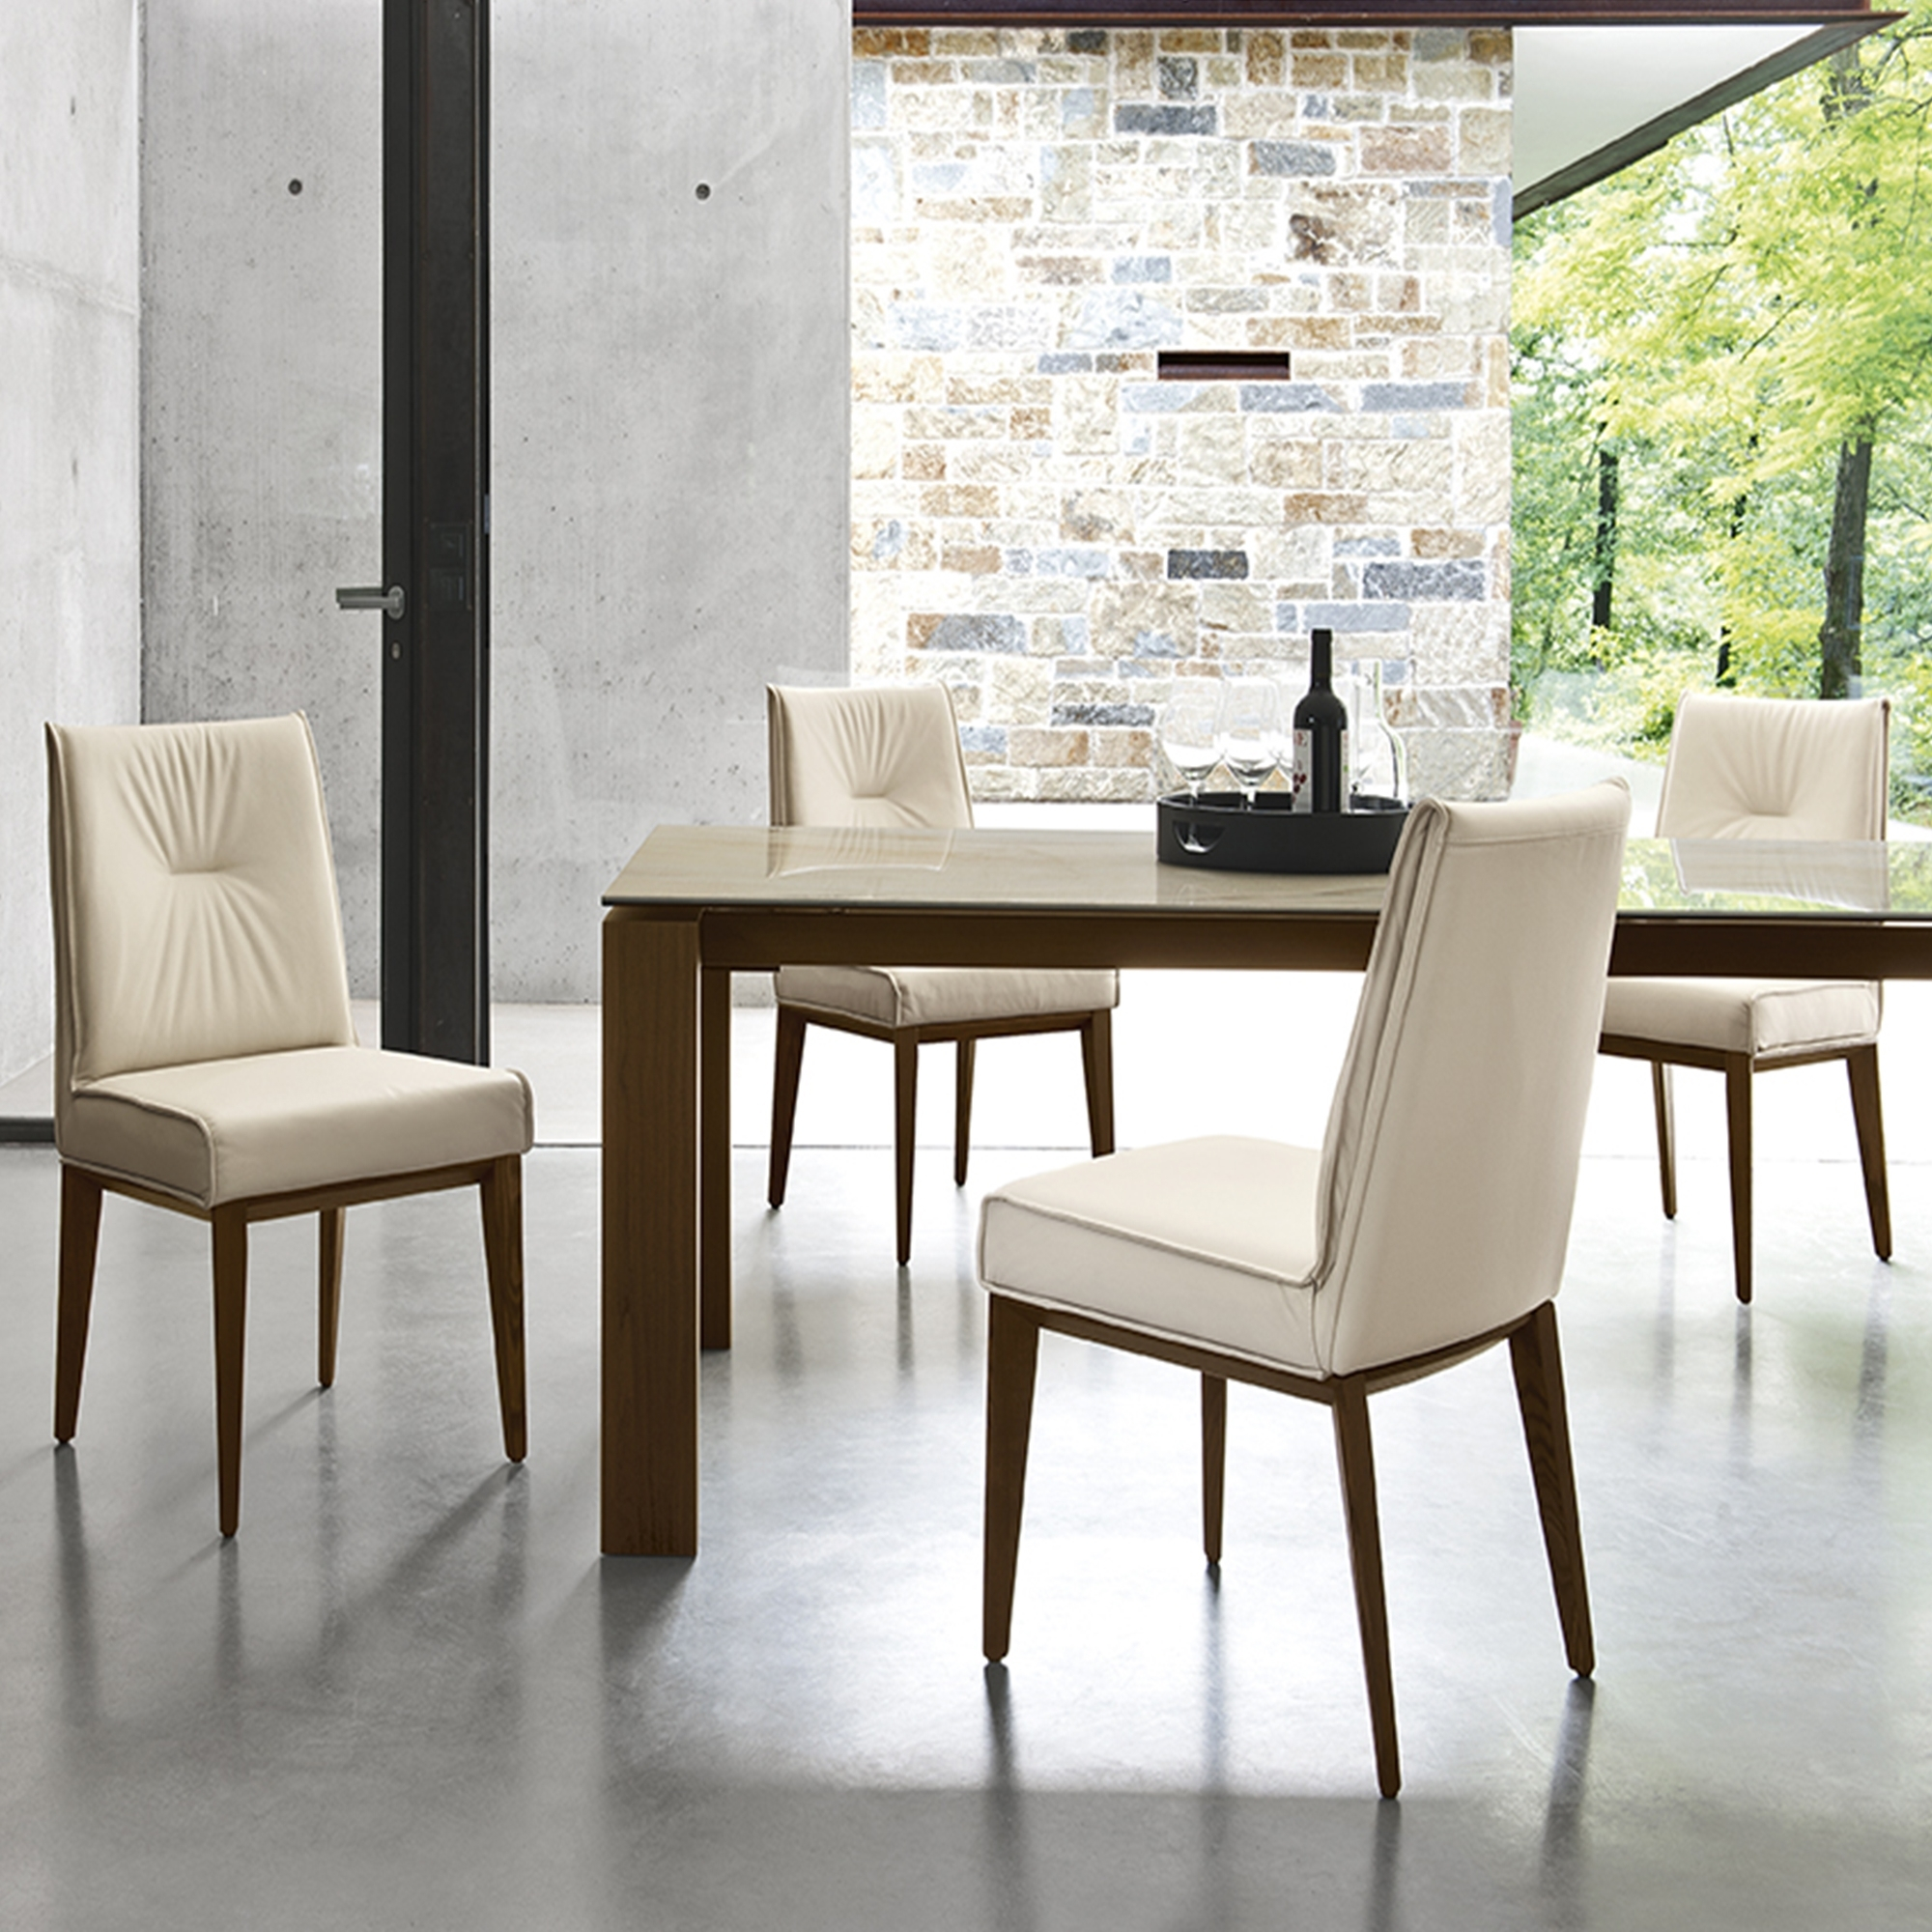 Tables Calligaris Omnia Dining Table And Chairs Calligaris